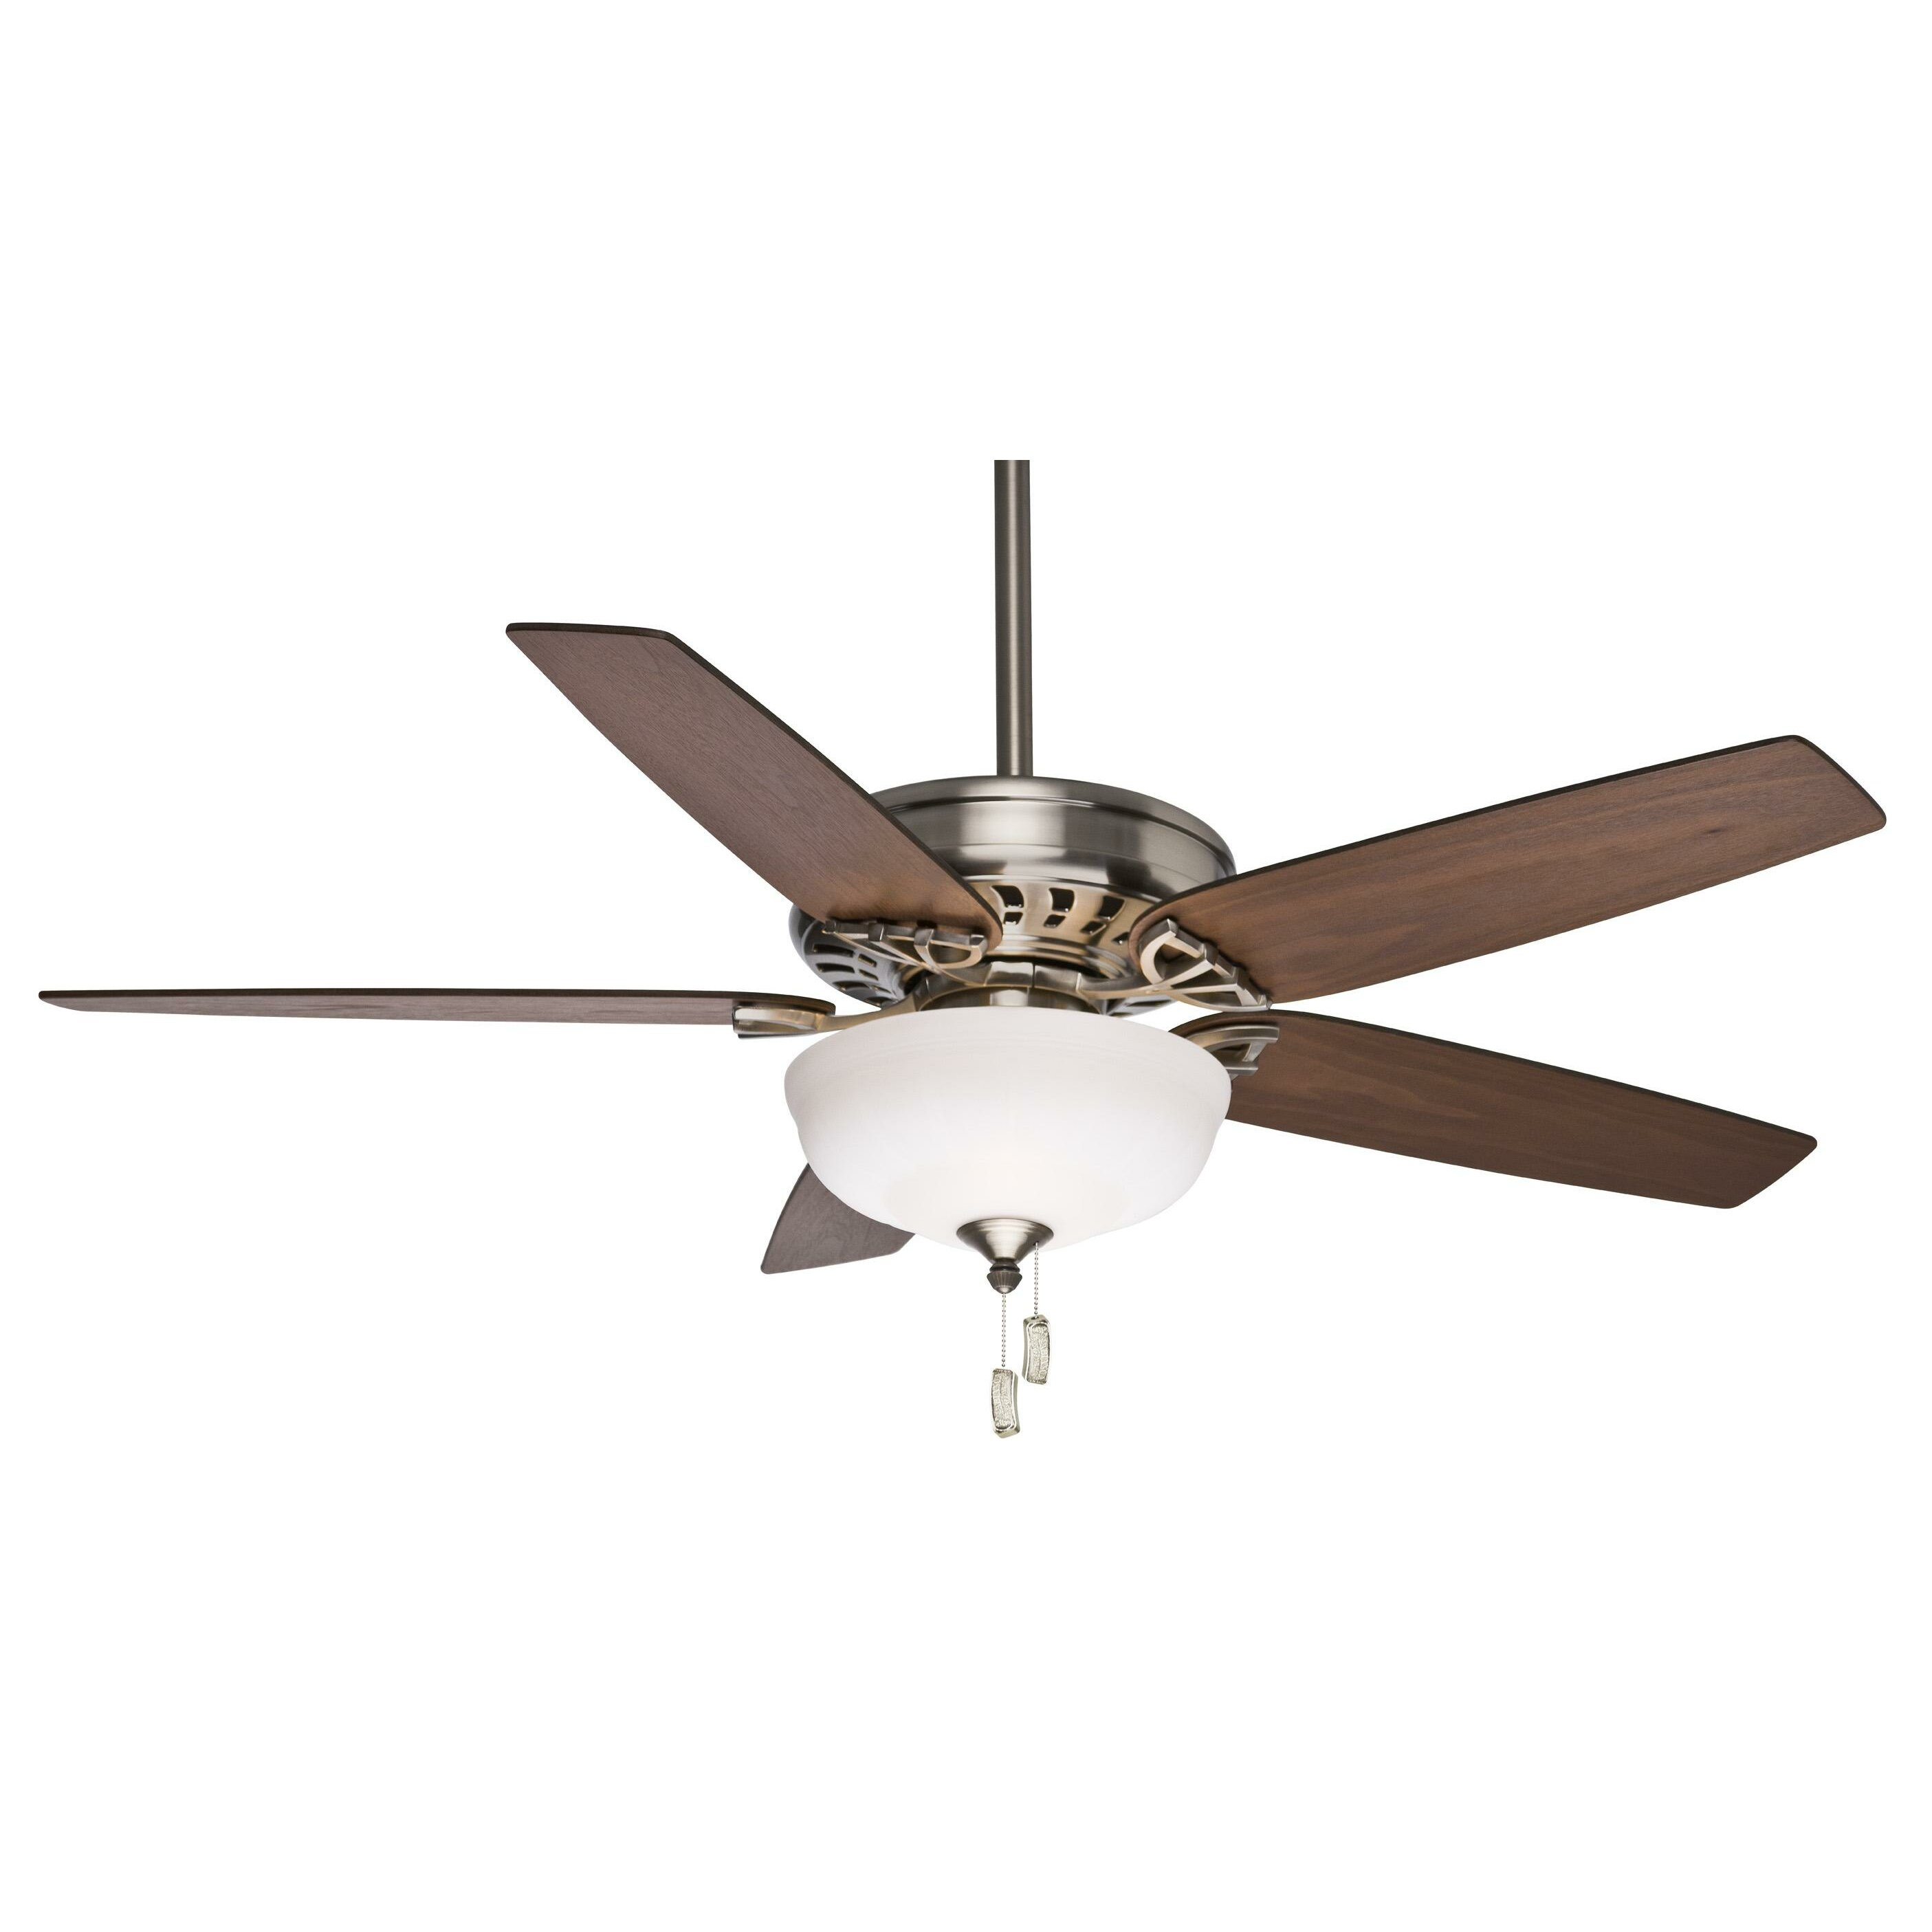 Bachelorette Pad Decor Casablanca Fan 54 Quot Concentra Gallery 5 Blade Ceiling Fan